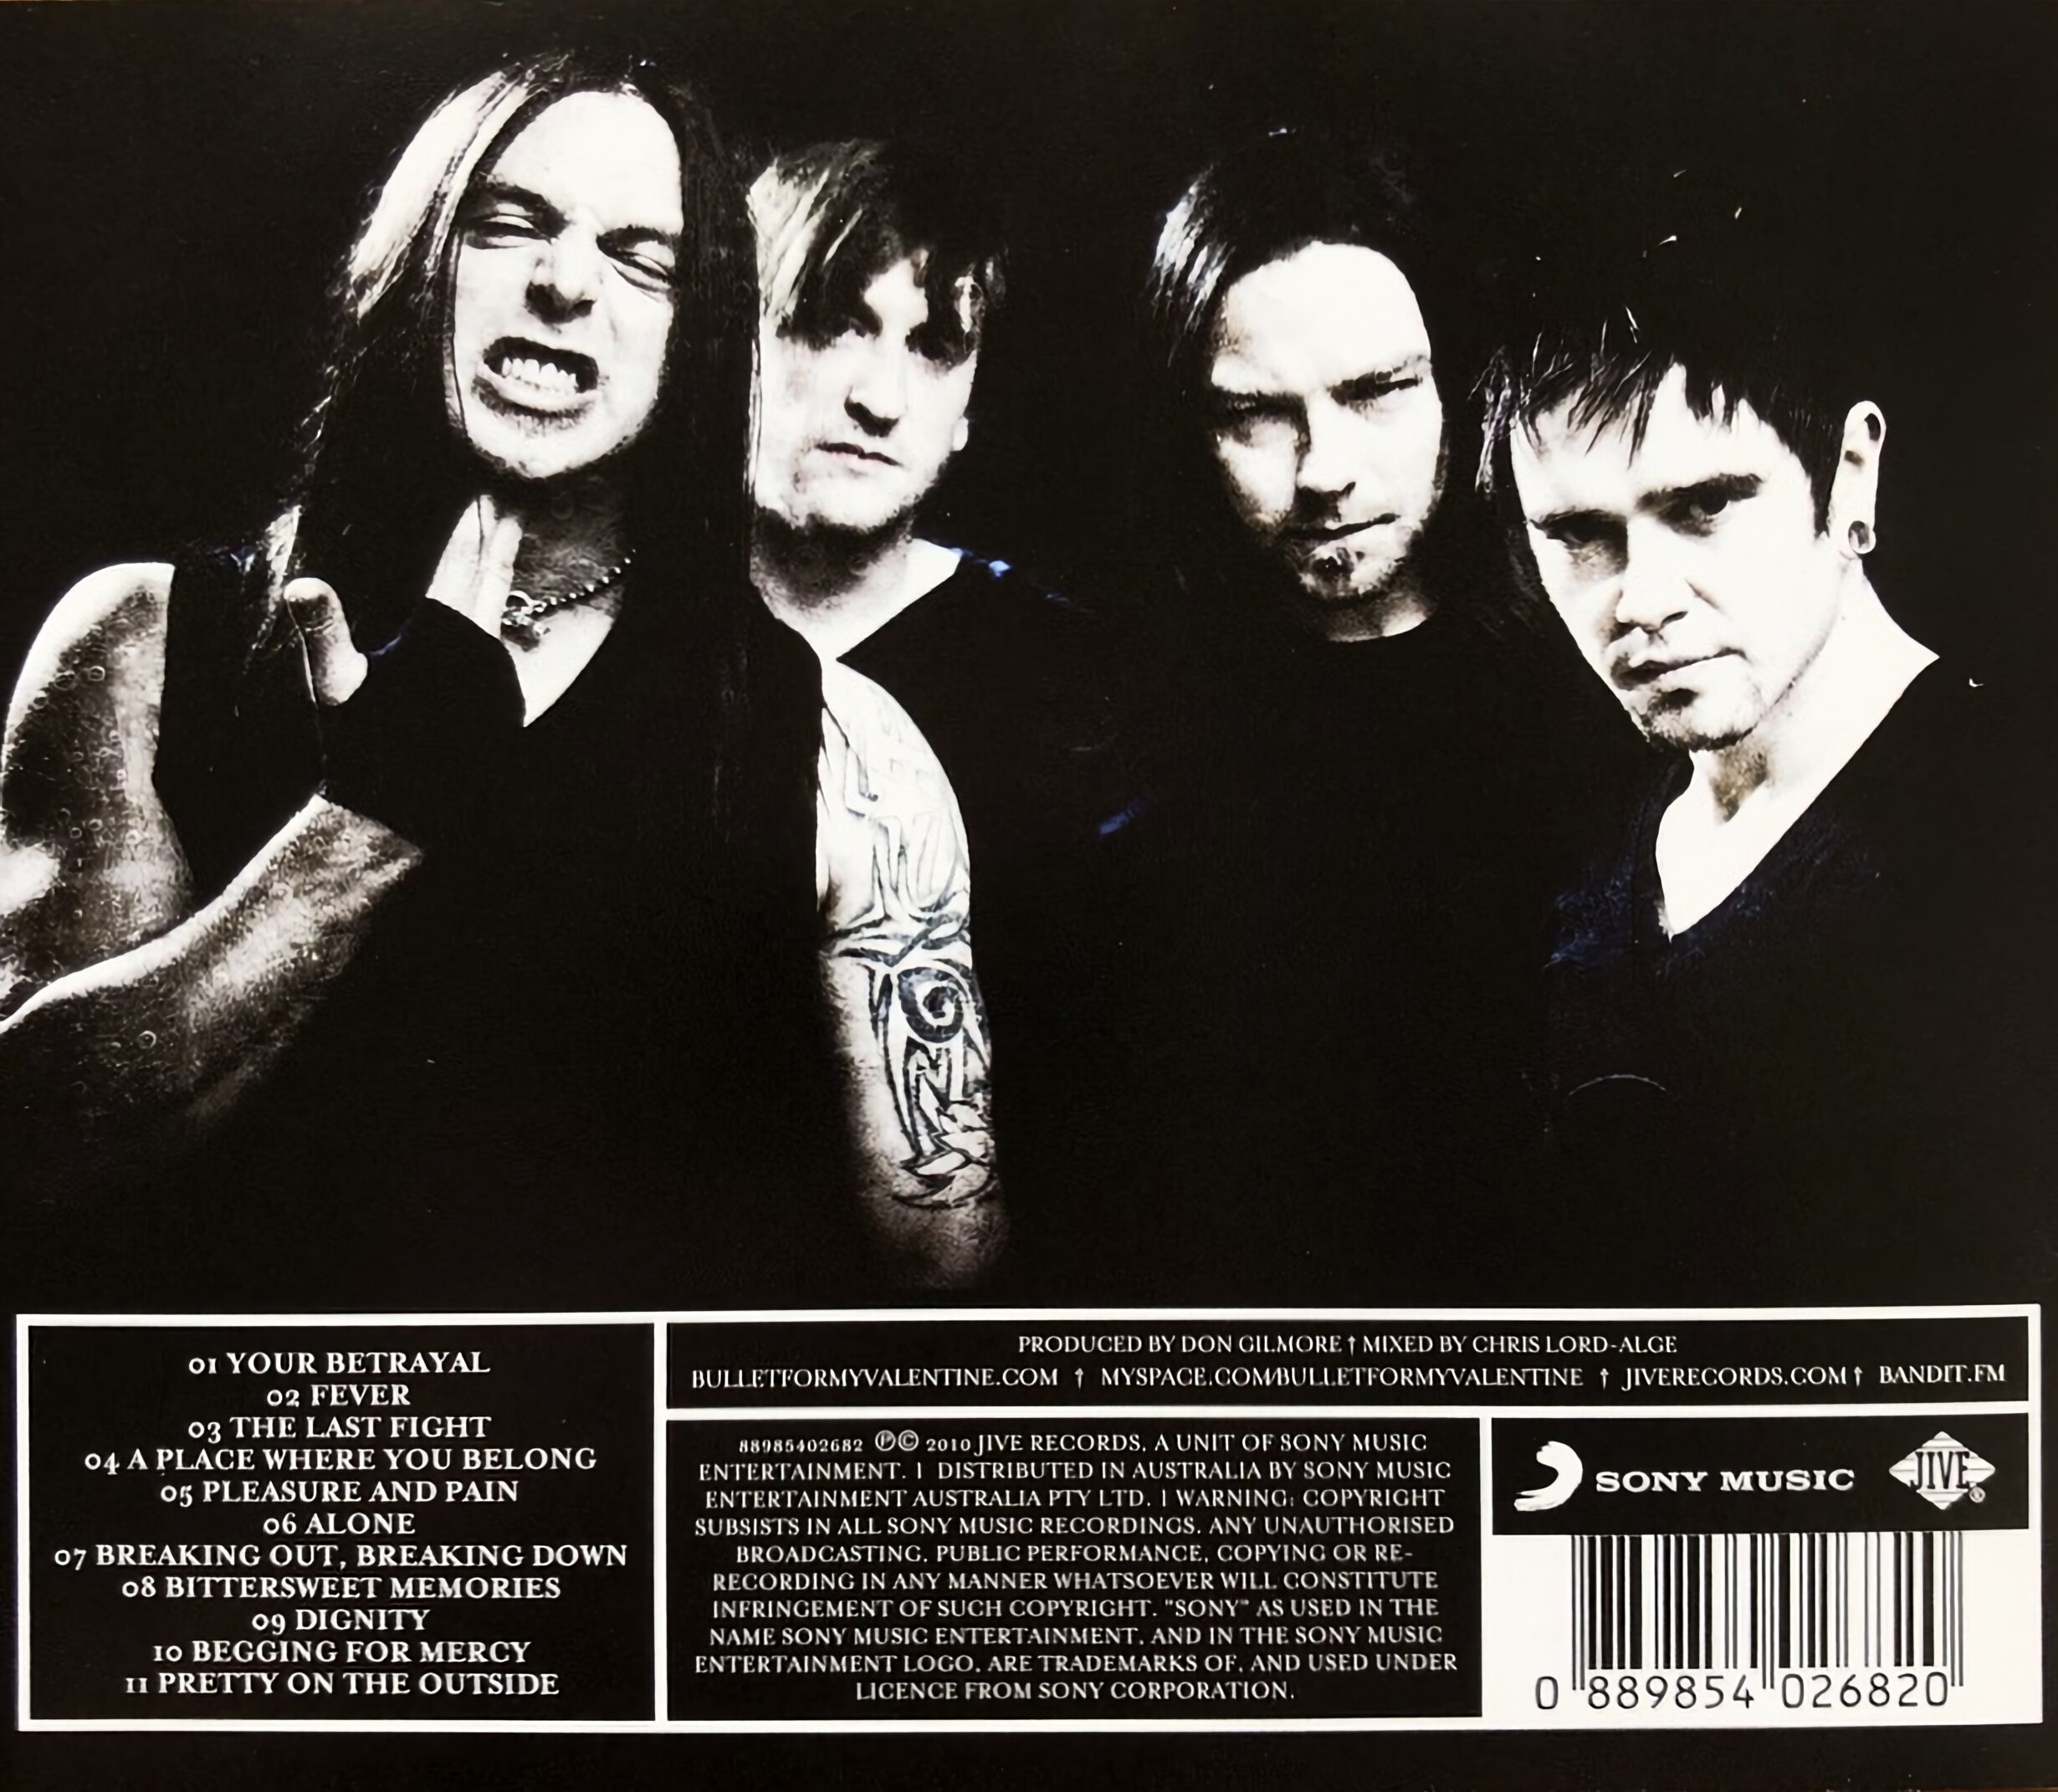 Bullet For My Valentine Fever Album Review On Cd Apple Music Subjective Sounds